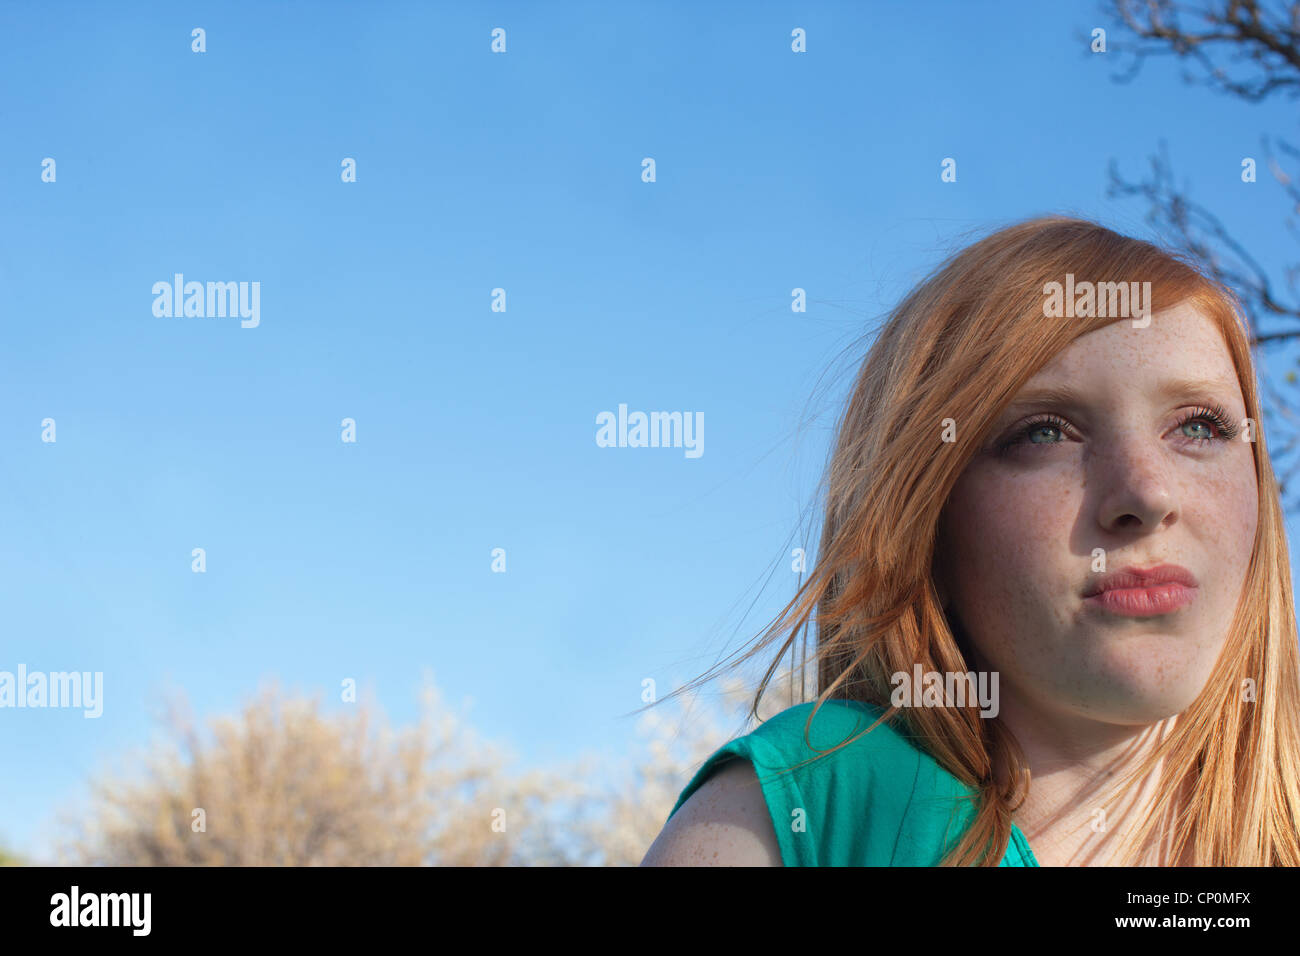 Sixteen year old girl sitting outdoors watching a game. - Stock Image